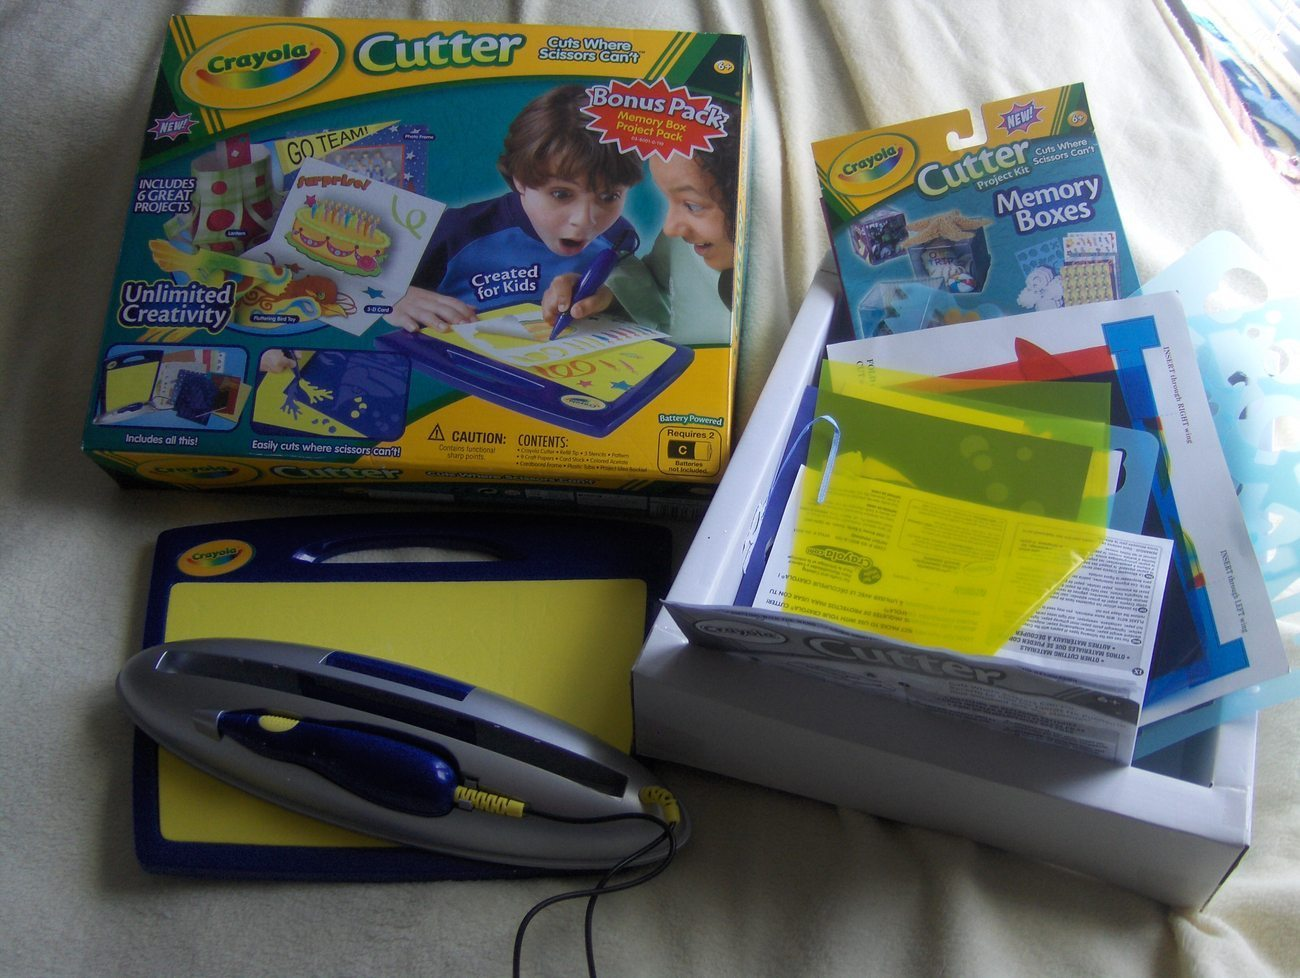 Crayola Cutter cuts where scissors can't Lots of extras ...